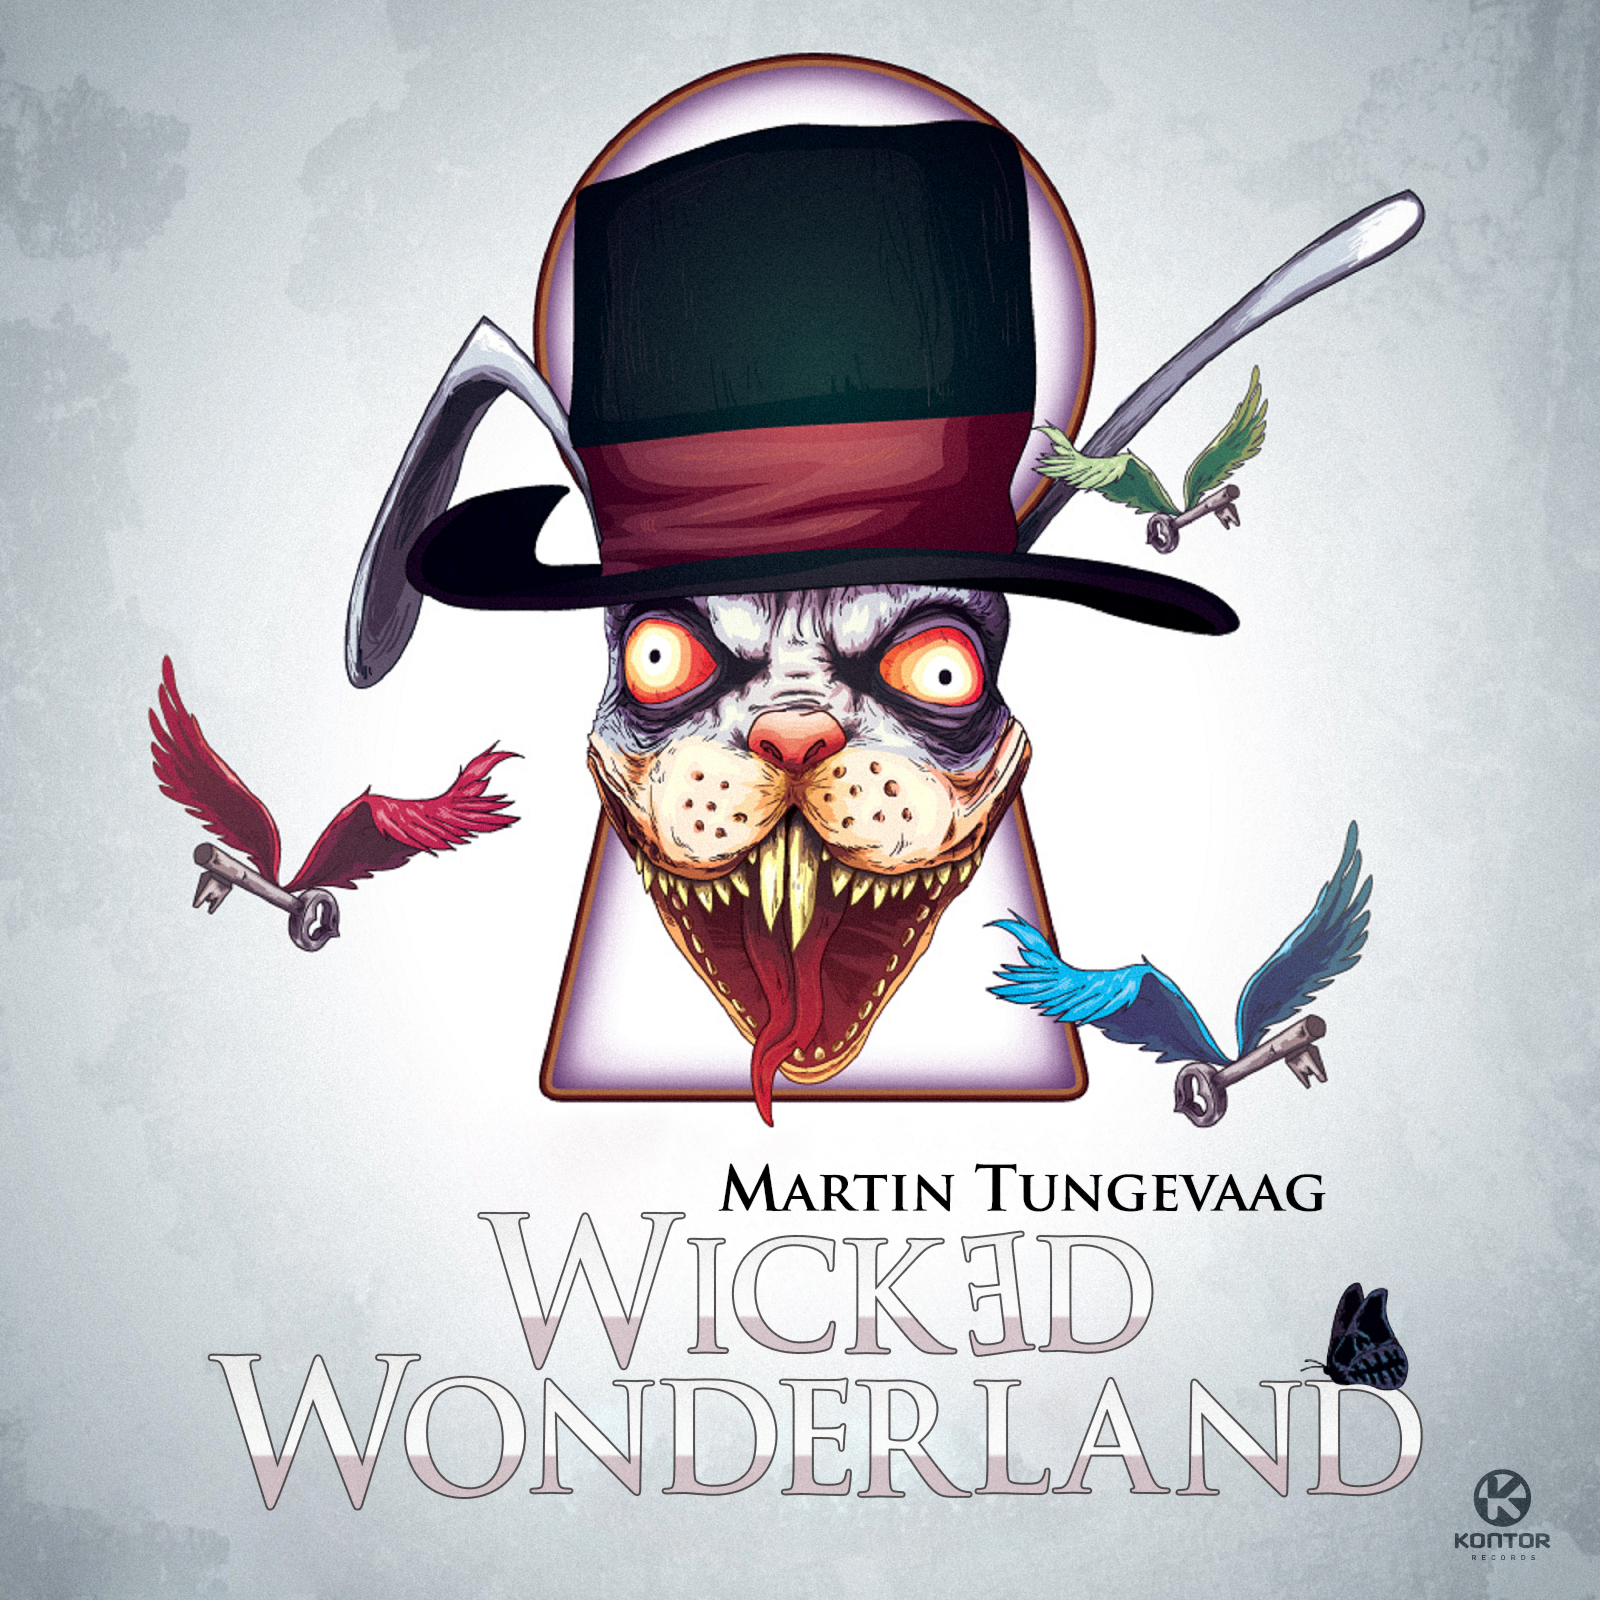 MARTIN TUNGEVAAG - Wicked Wonderland (Kontor/Kontor New Media)